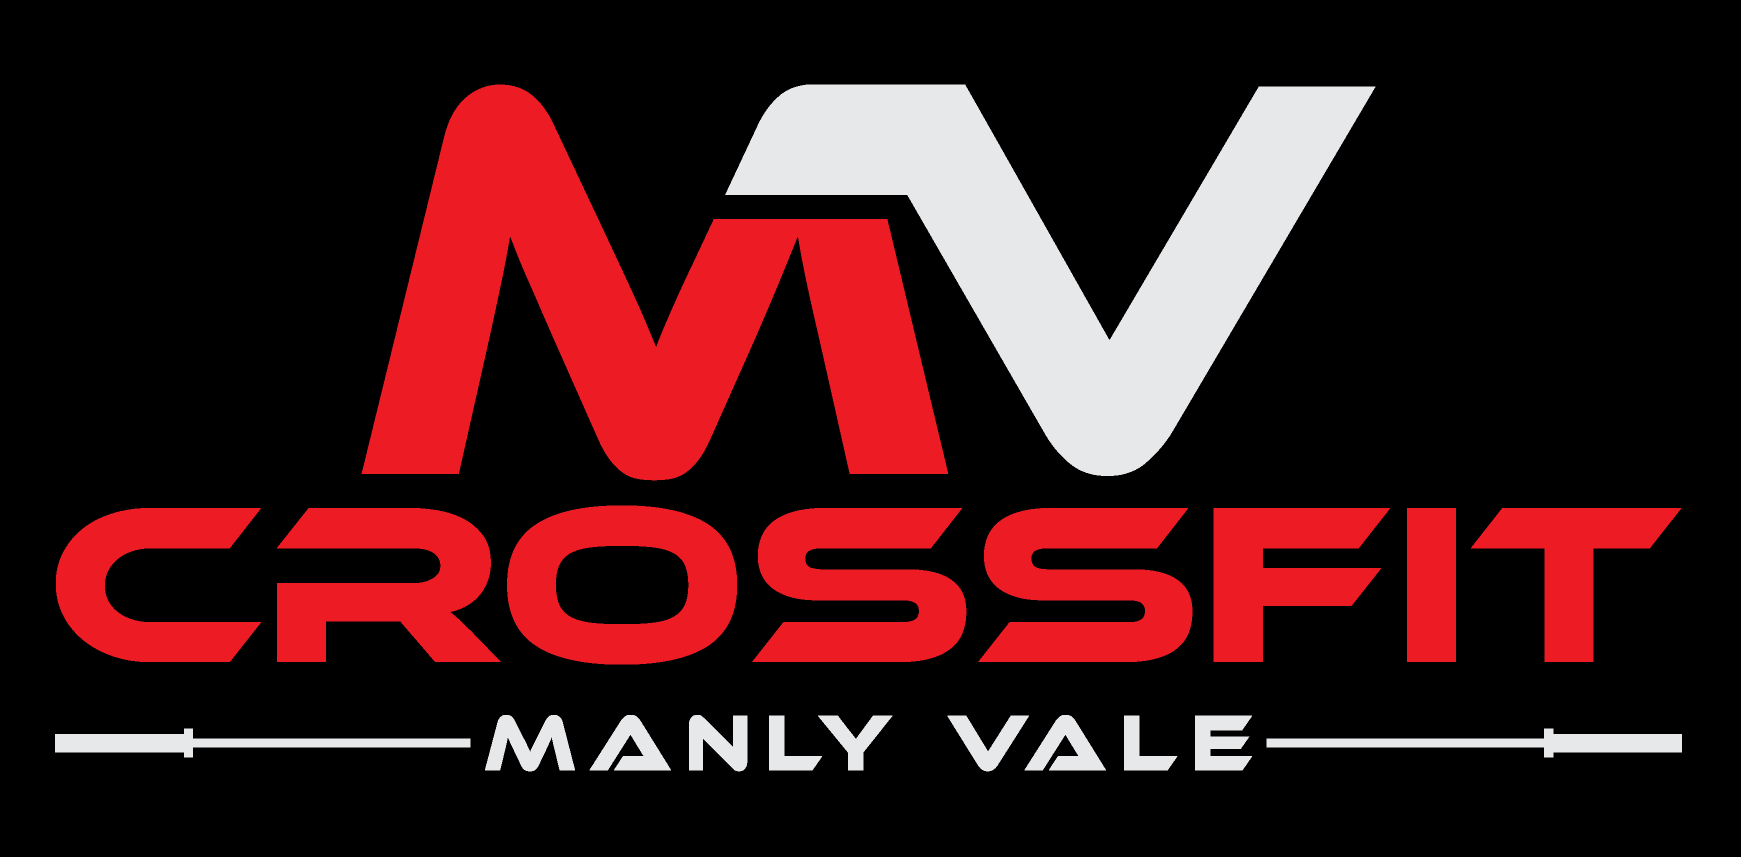 Crossfit Manly Vale